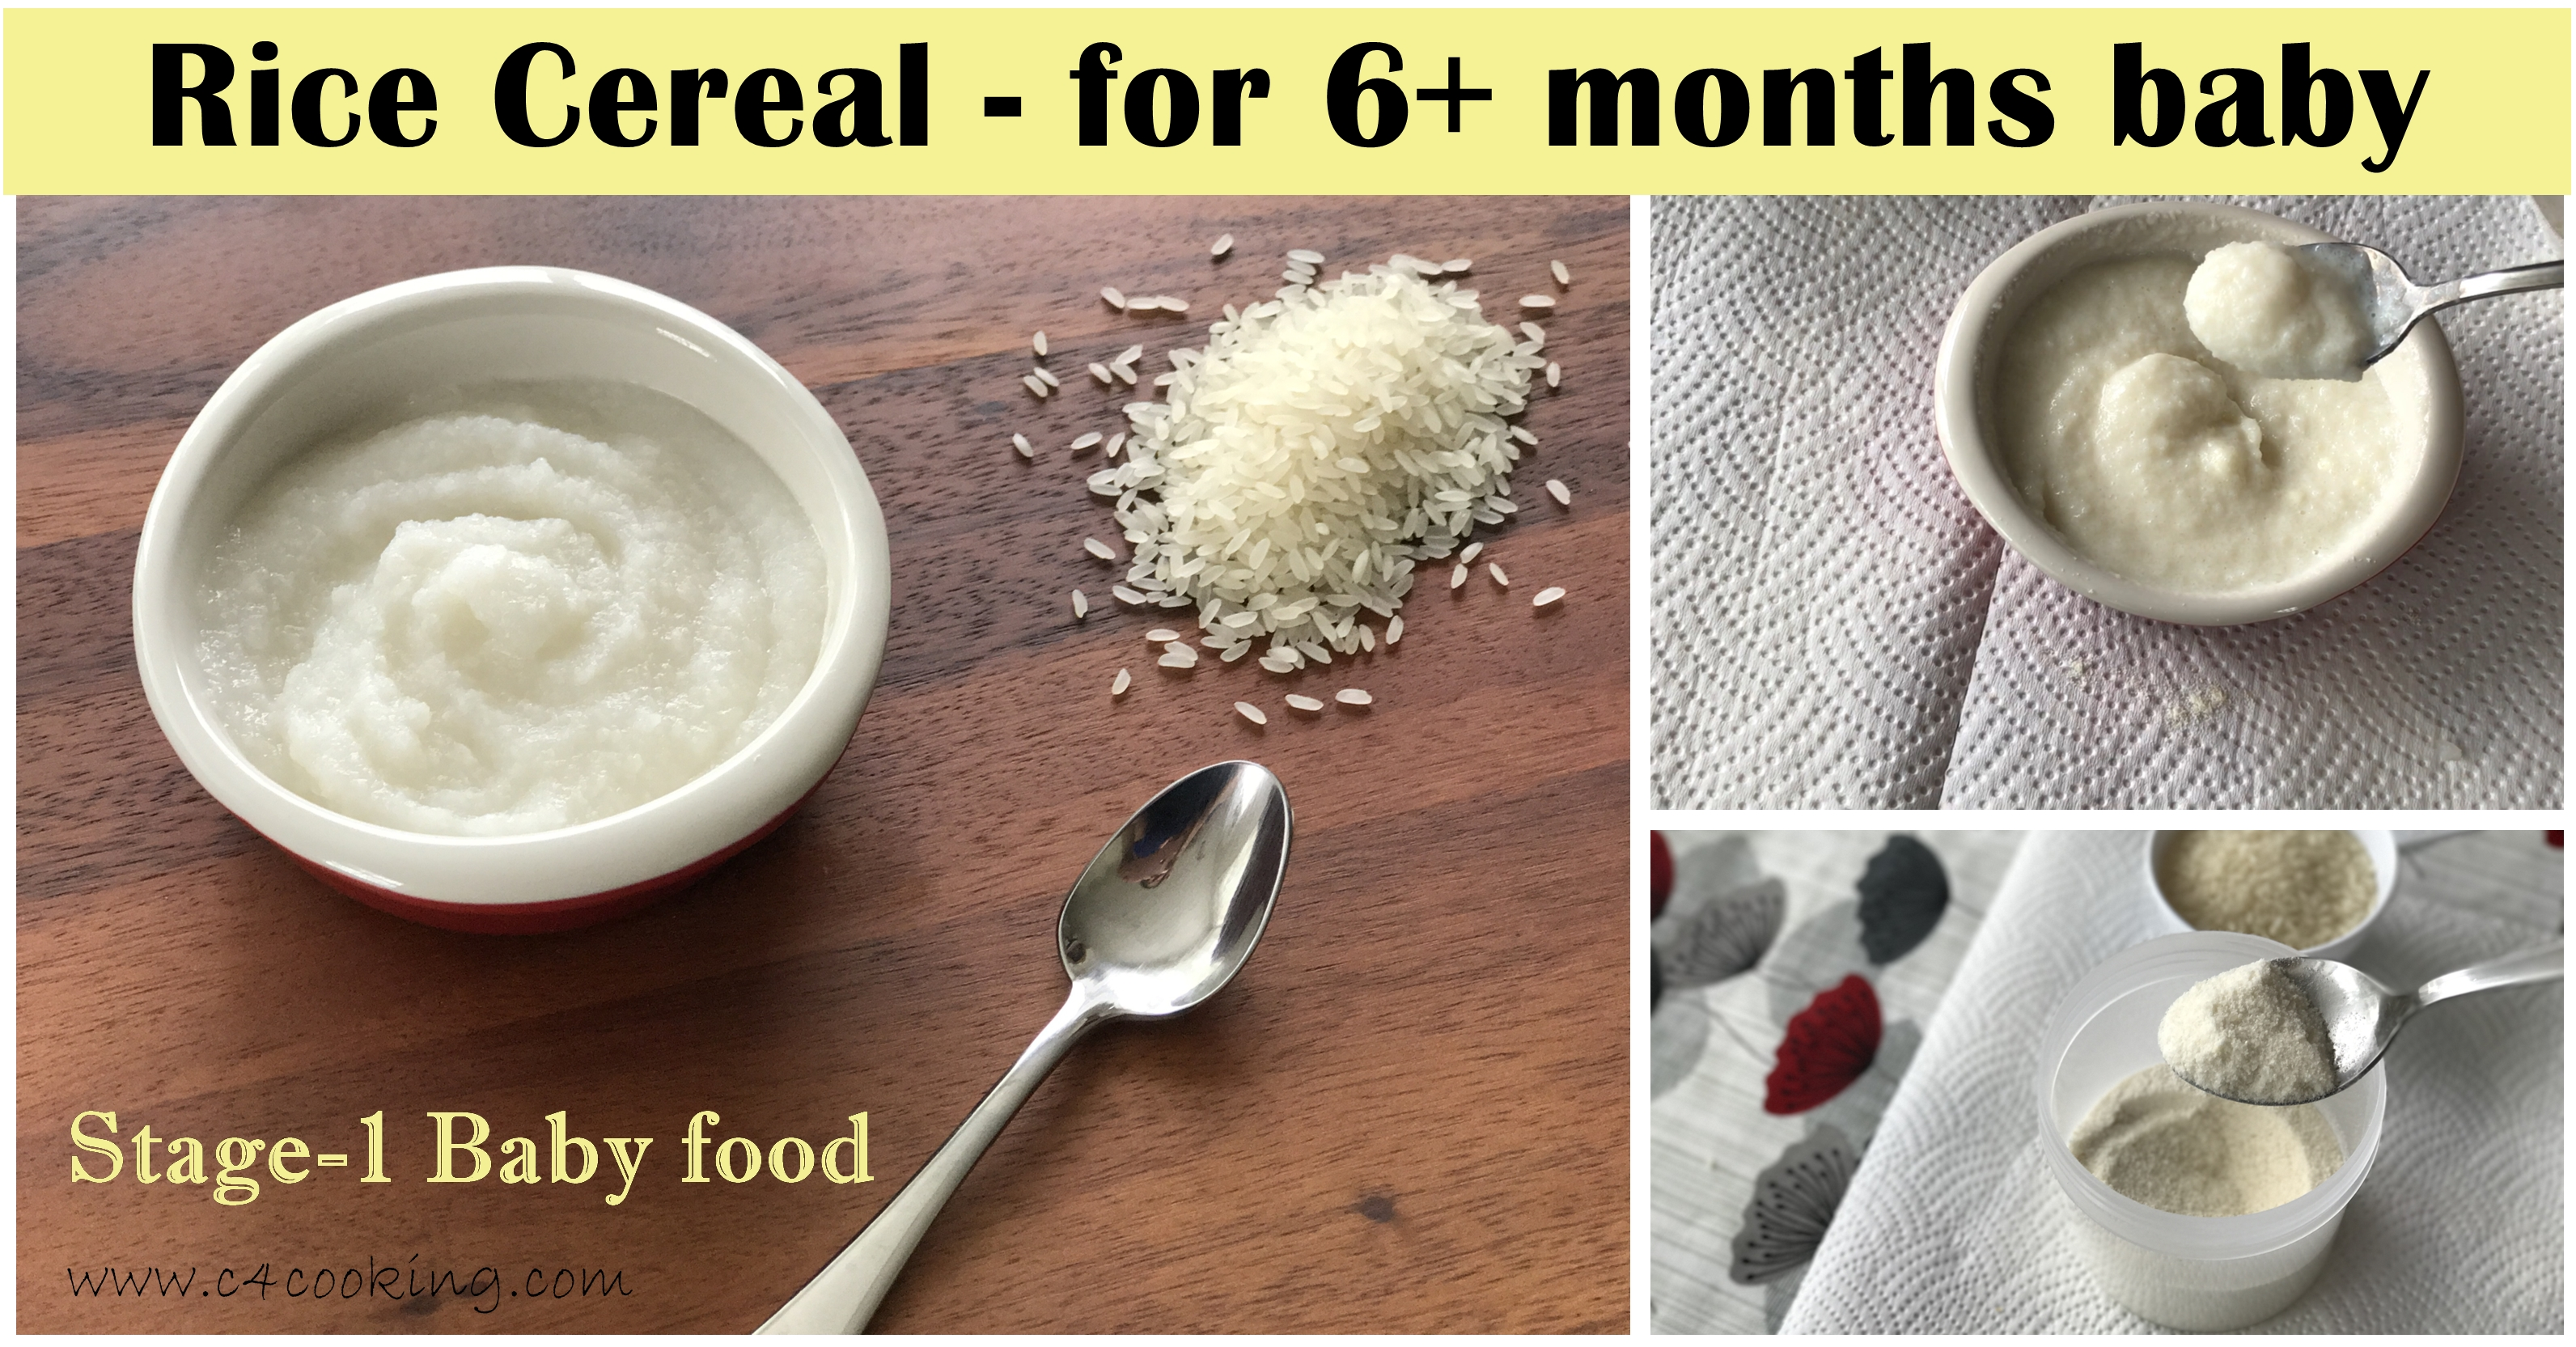 rice cereal recipe, baby cerlac recipe, 6months babyfood,